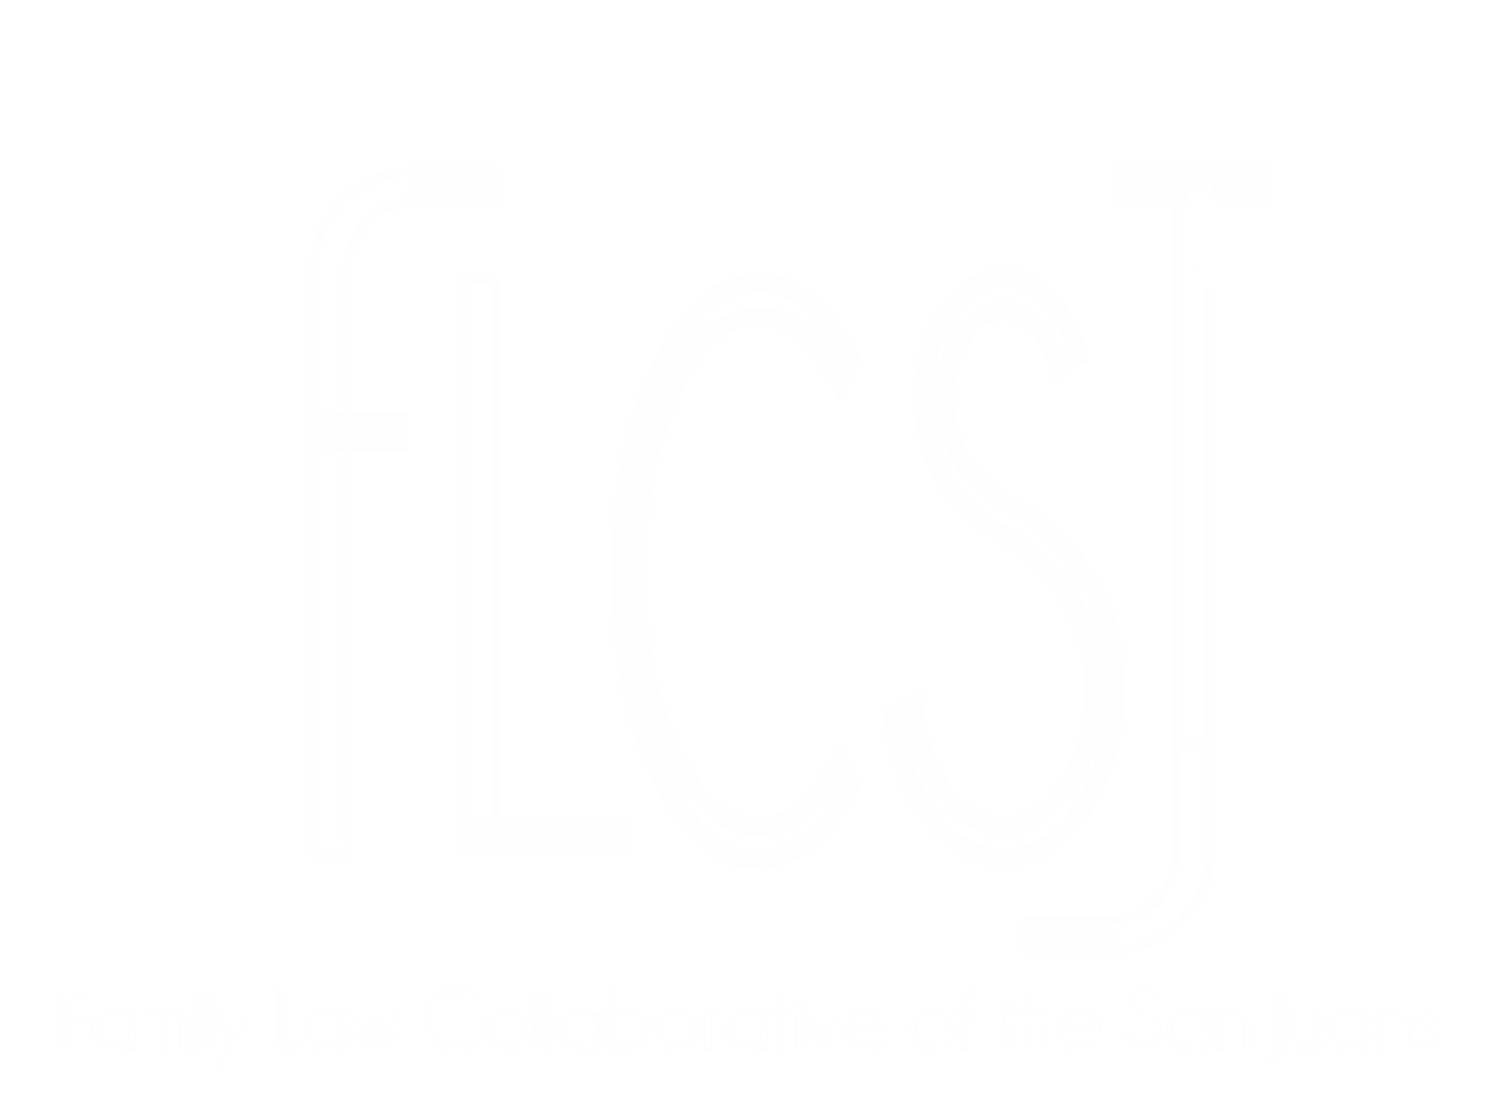 Family Law Collaborative of the San Juans